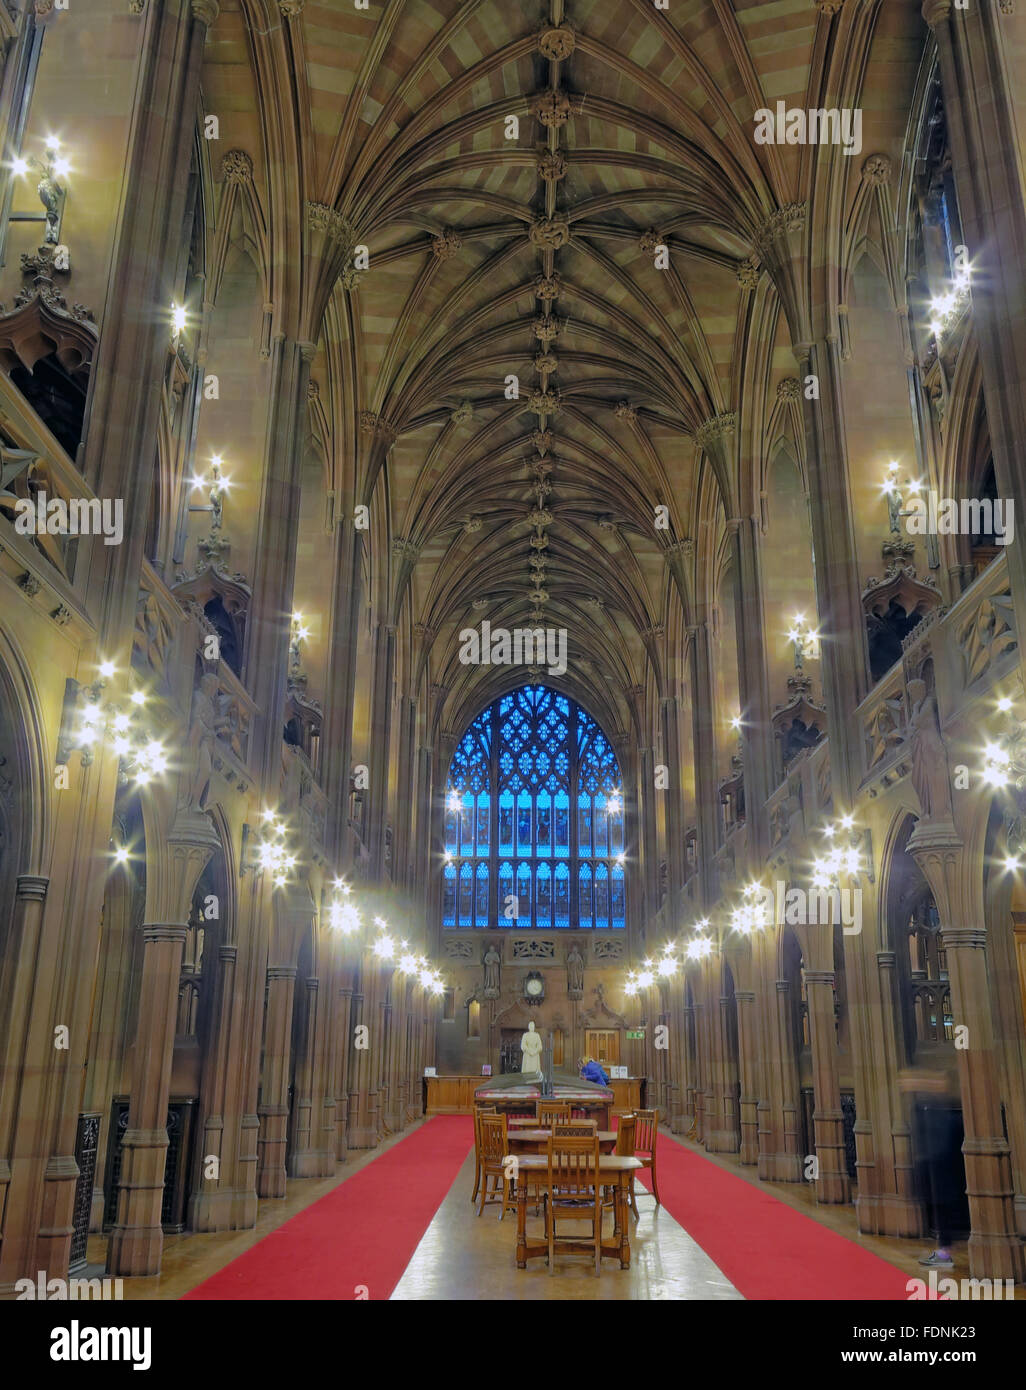 John Rylands Library Interior,Deansgate,Manchester,England,UK - Long View - Stock Image